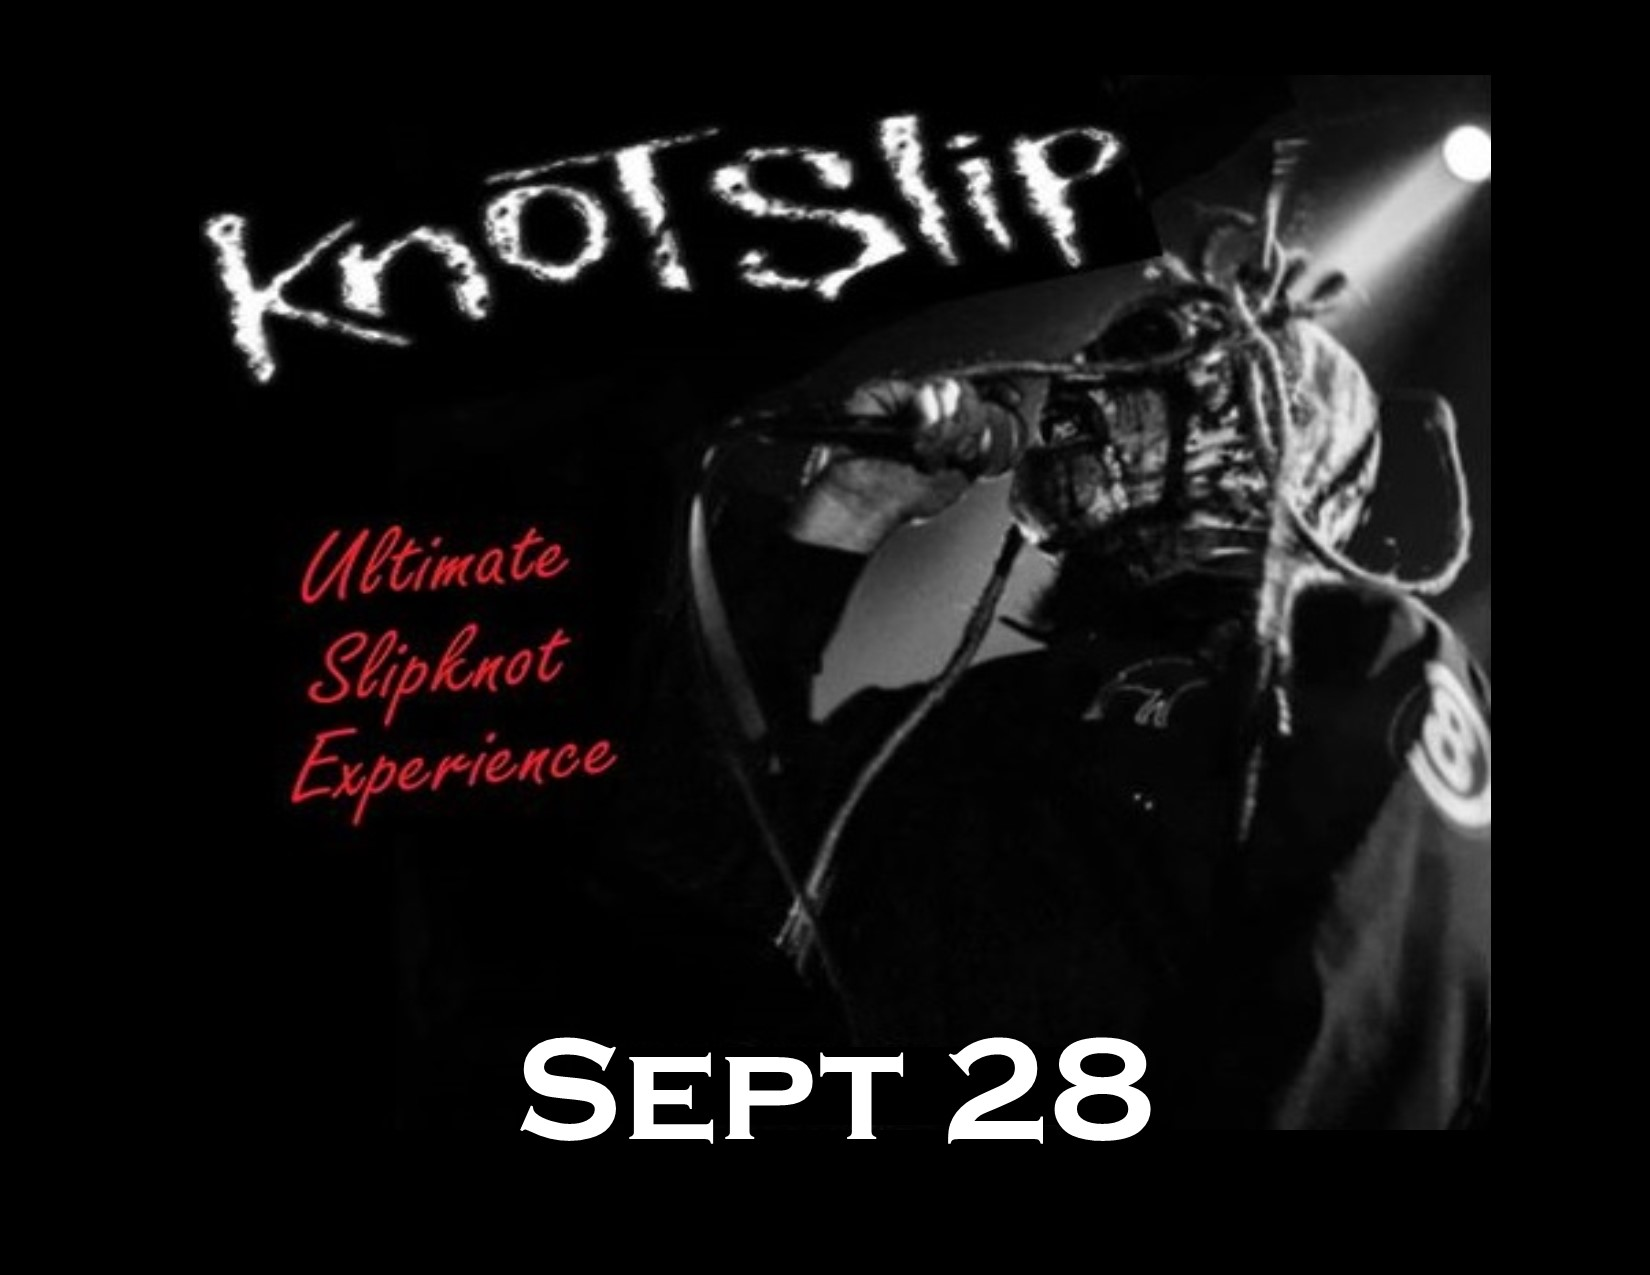 KNOTSLIP - A TRIBUTE to SLIPKNOT